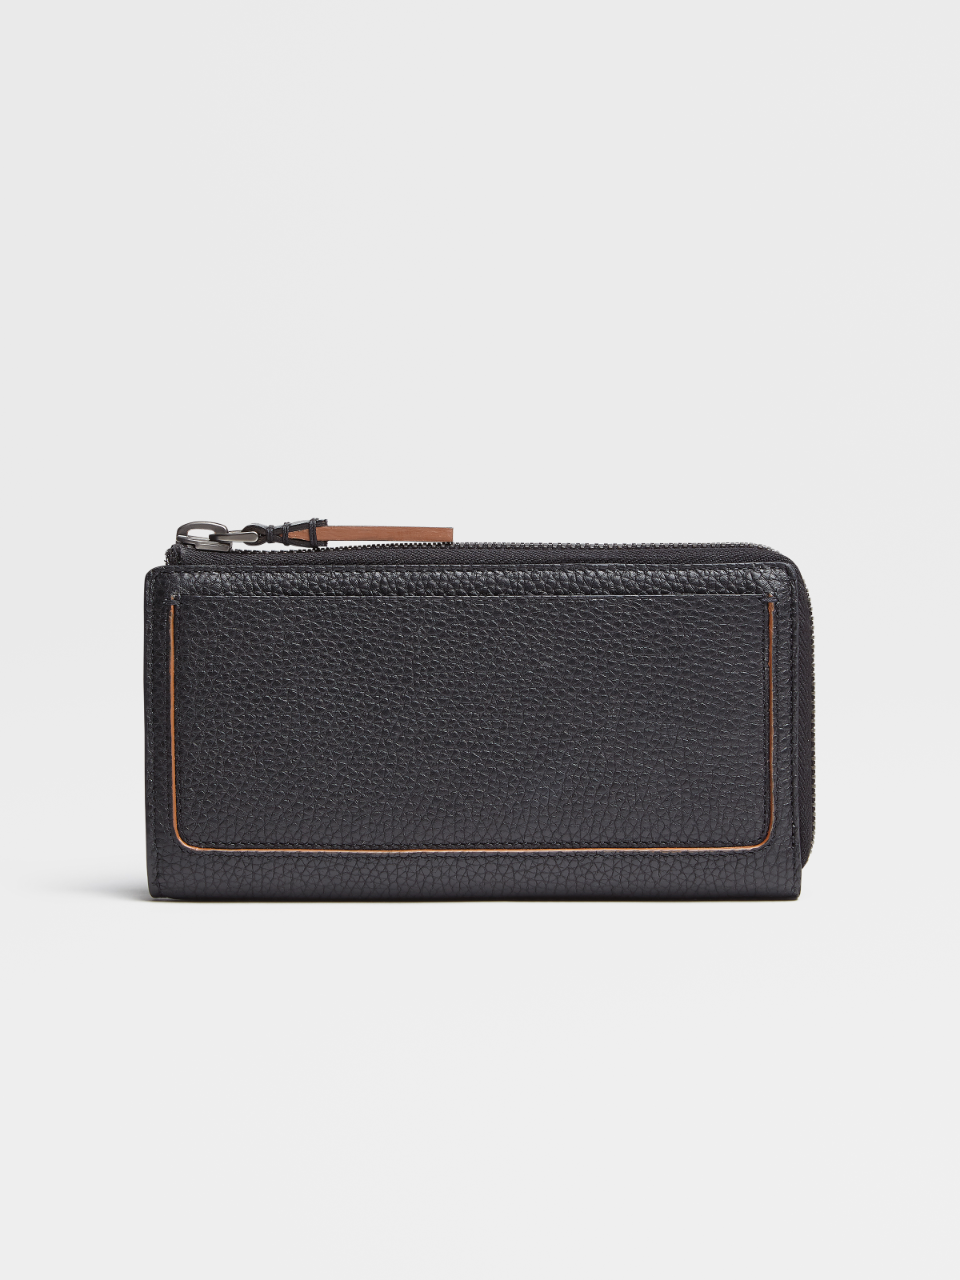 Grained Calfskin Blazer Continental Phone Wallet